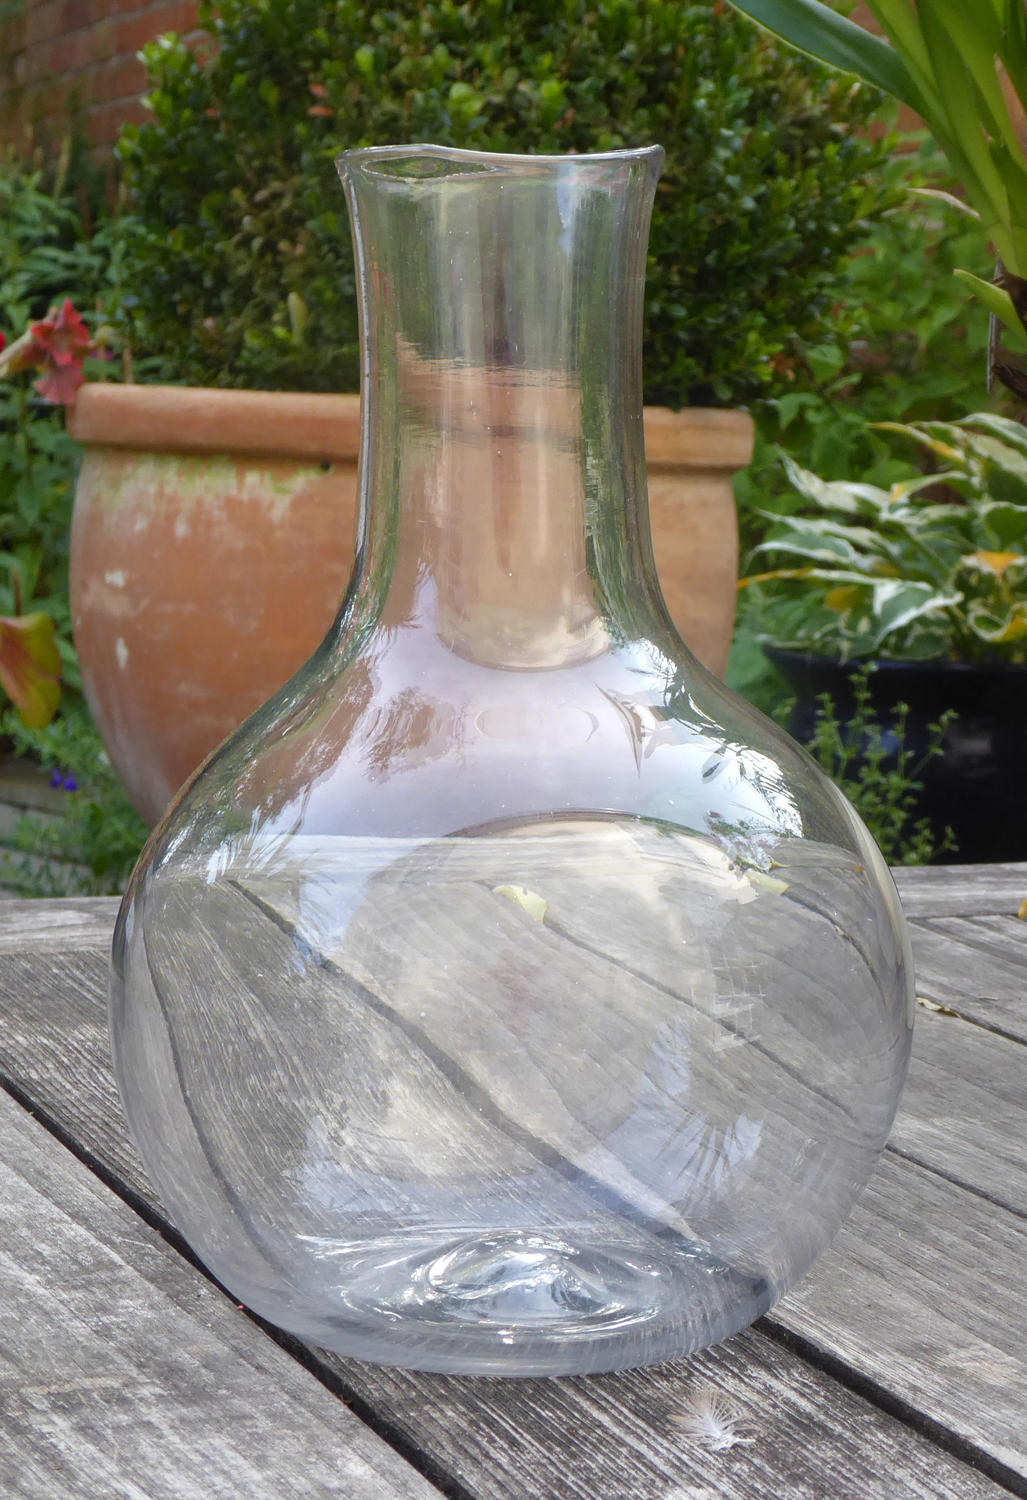 6633 A rare early and unusual magnum carafe